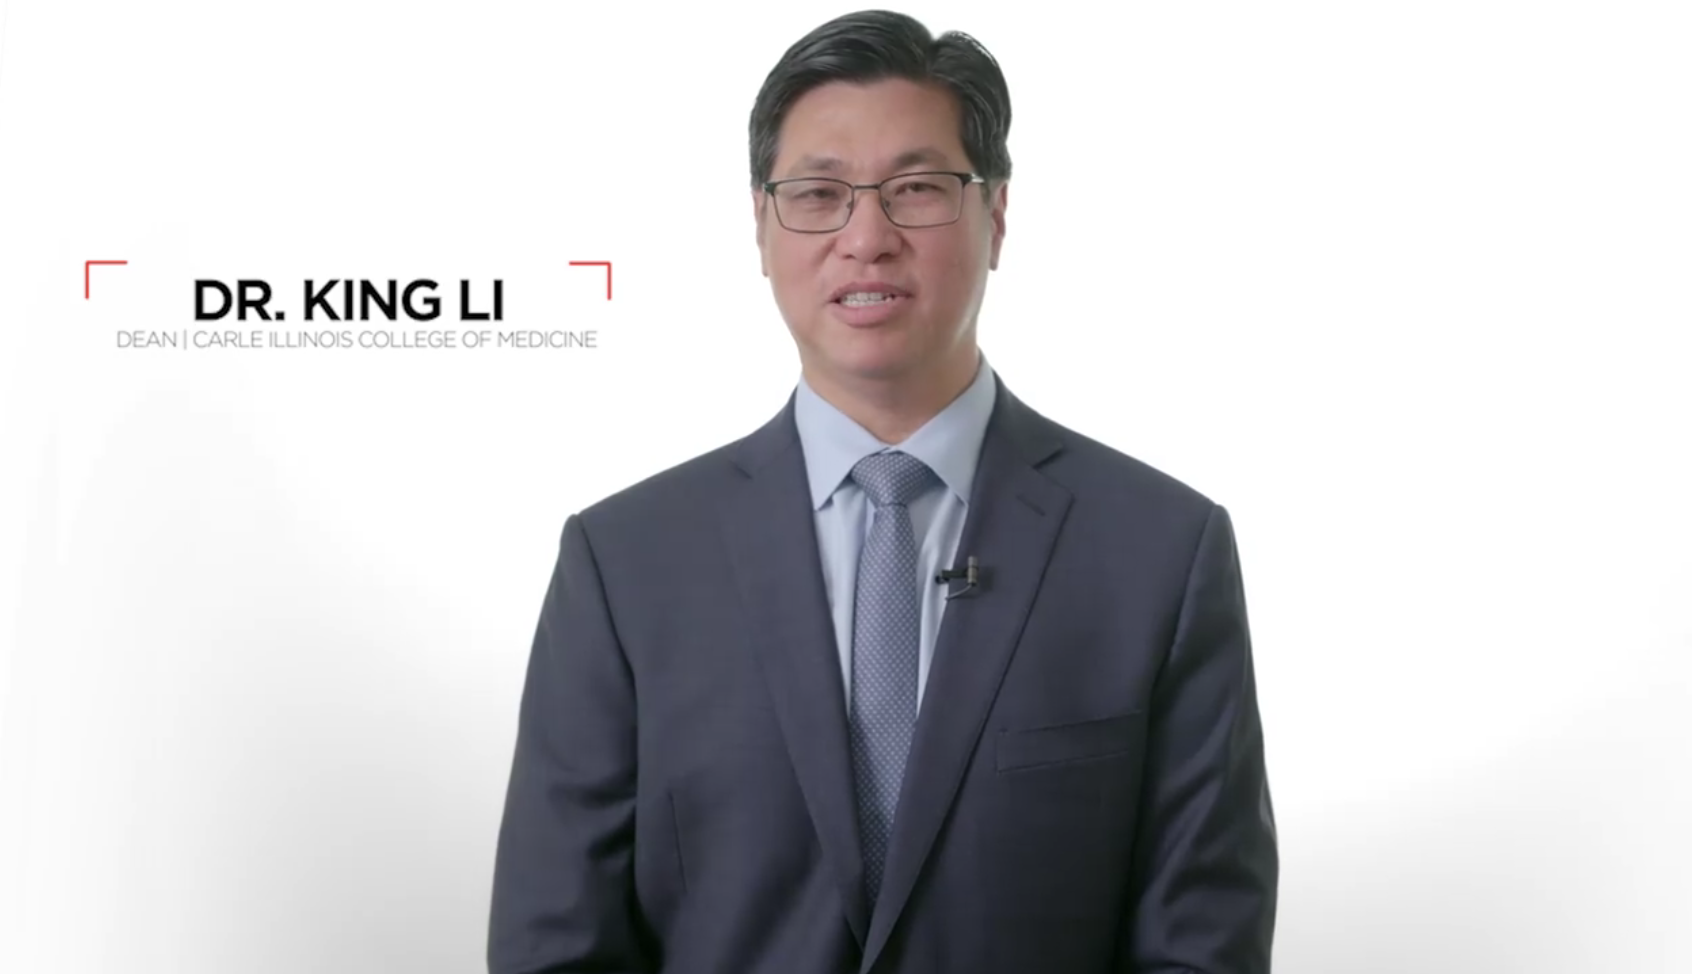 Dr. King Li, Carle Illinois College of Medicine, prospective student video message